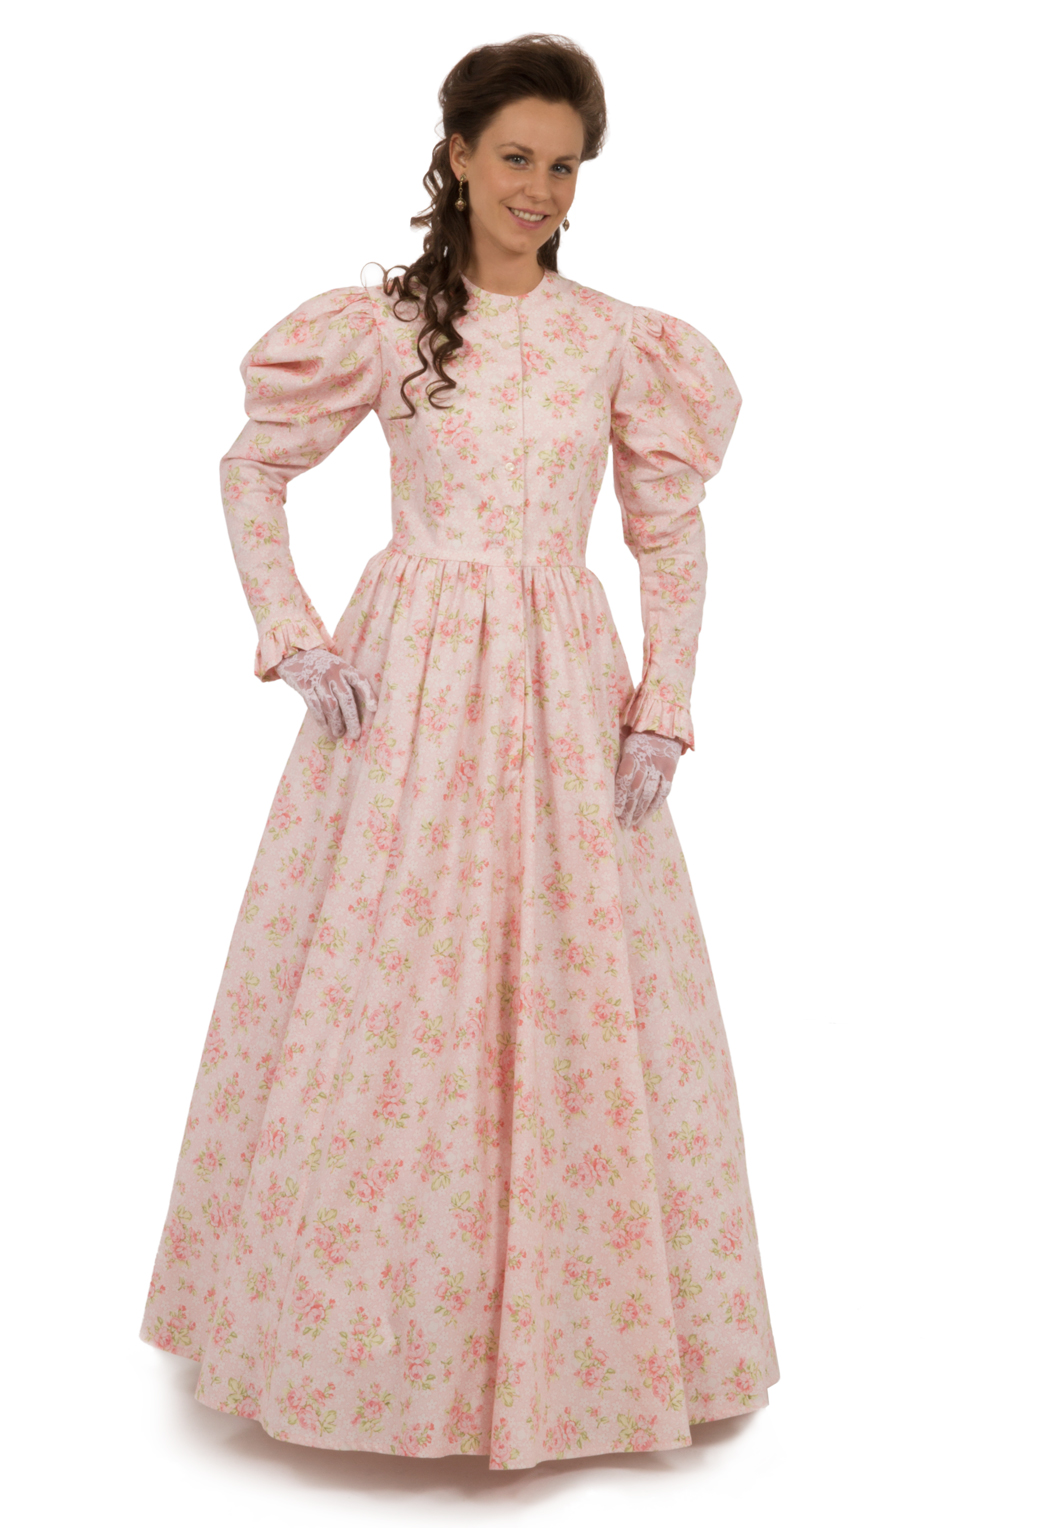 Victorian Dress | Recollections